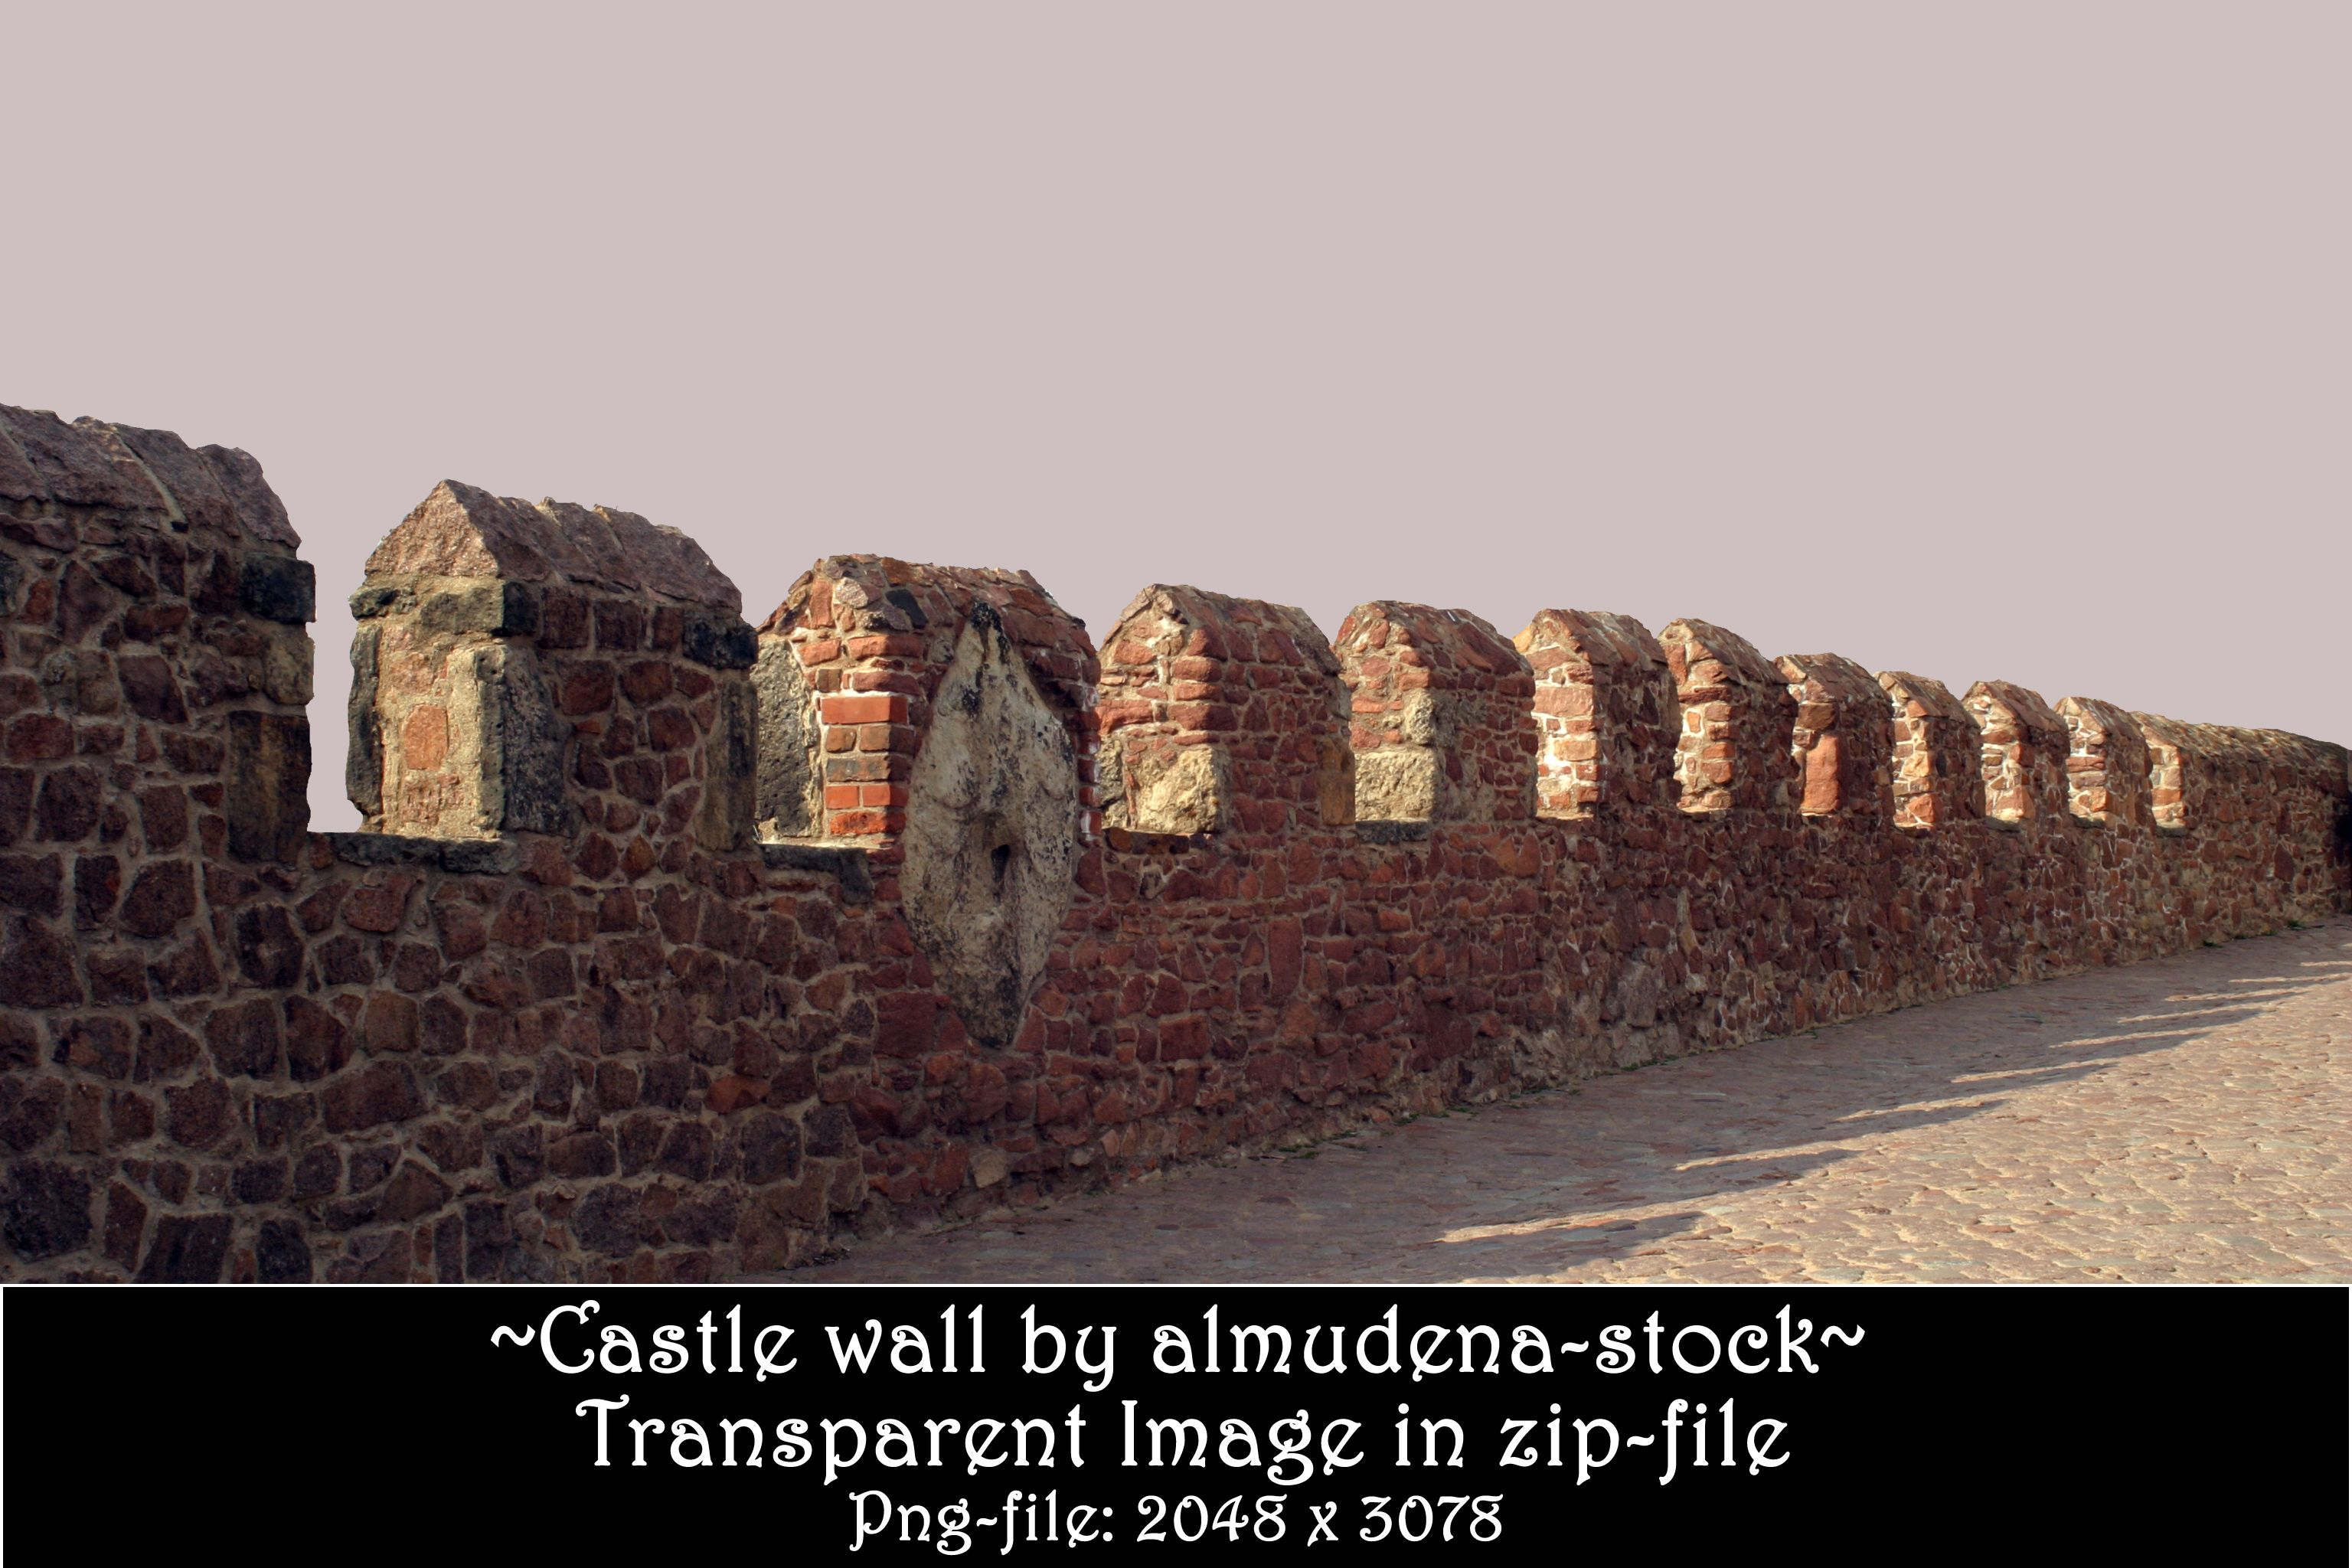 Castle Wall Transparent File By Almudena Stock On Deviantart Castle Wall Castle Transparent